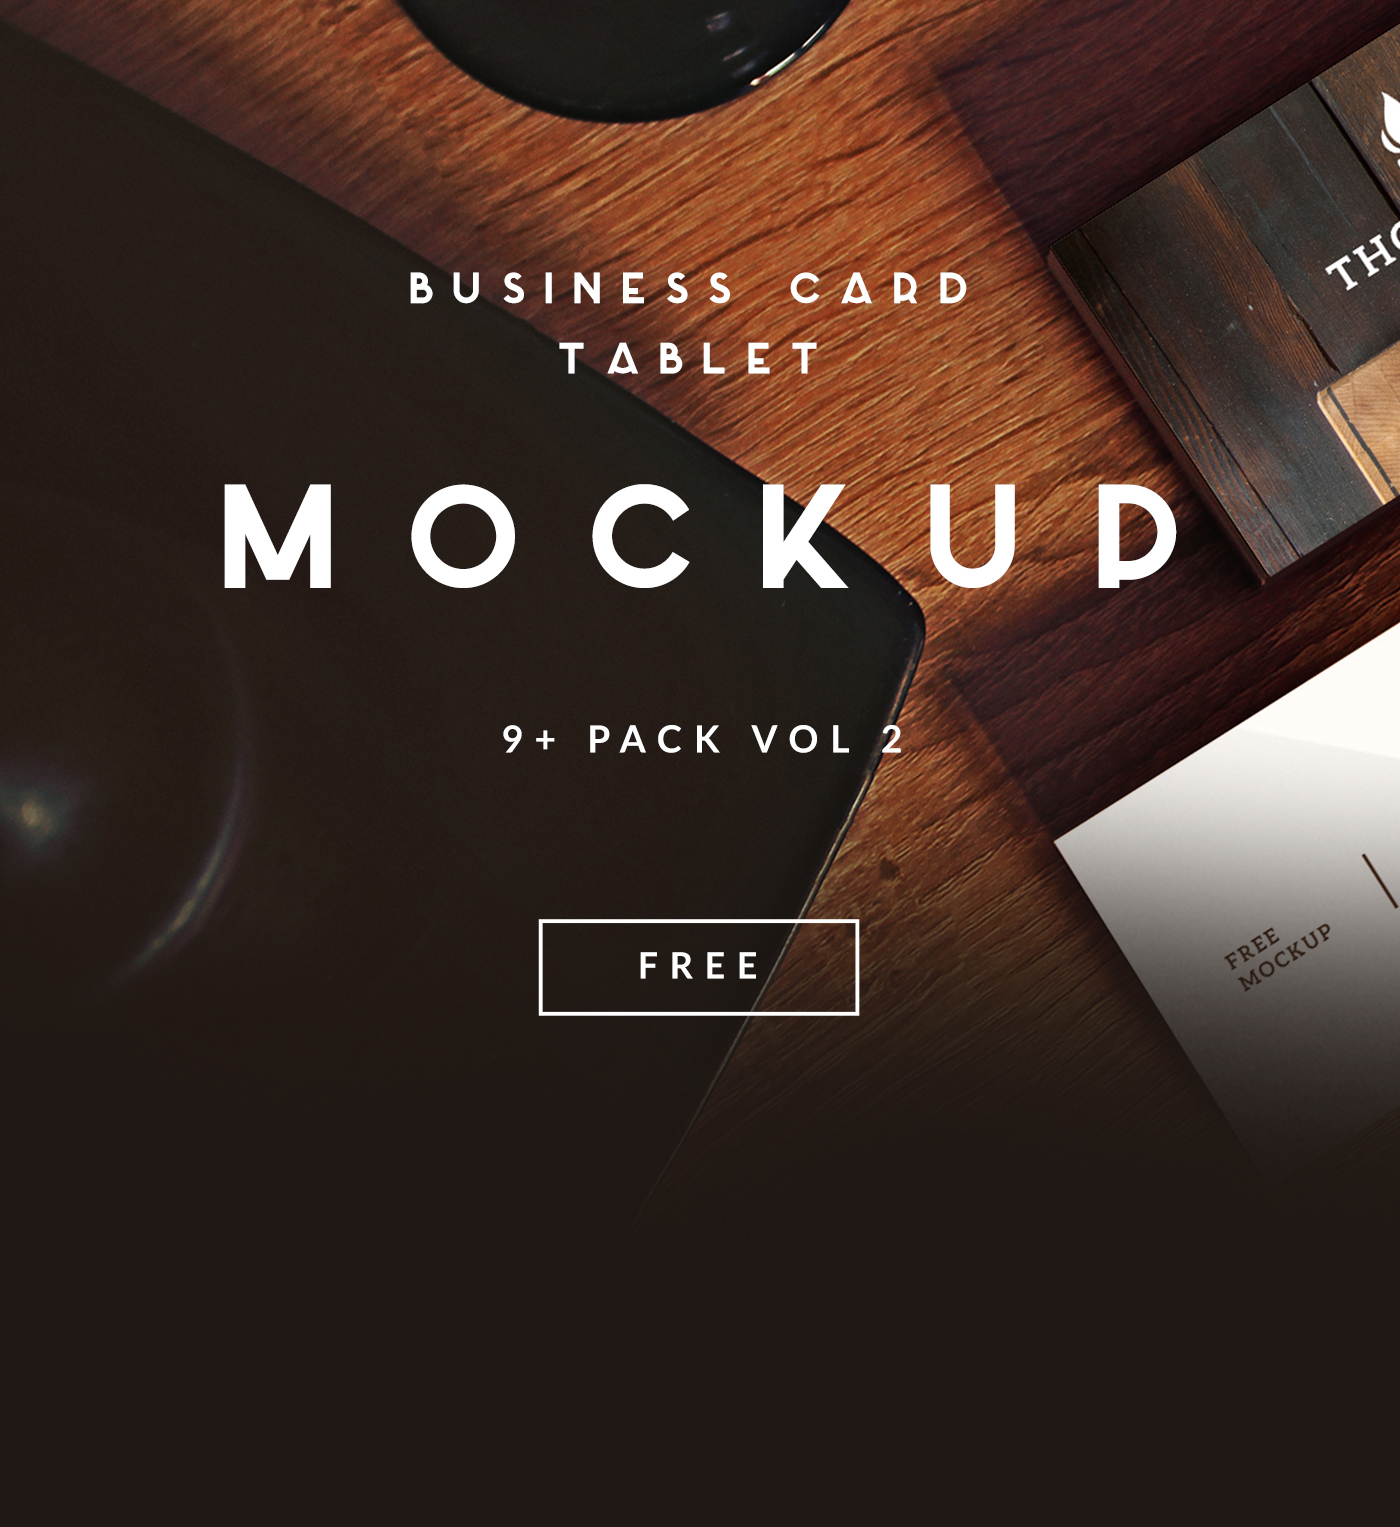 9 business card tablet free mockup vol 2 download on behance reheart Images